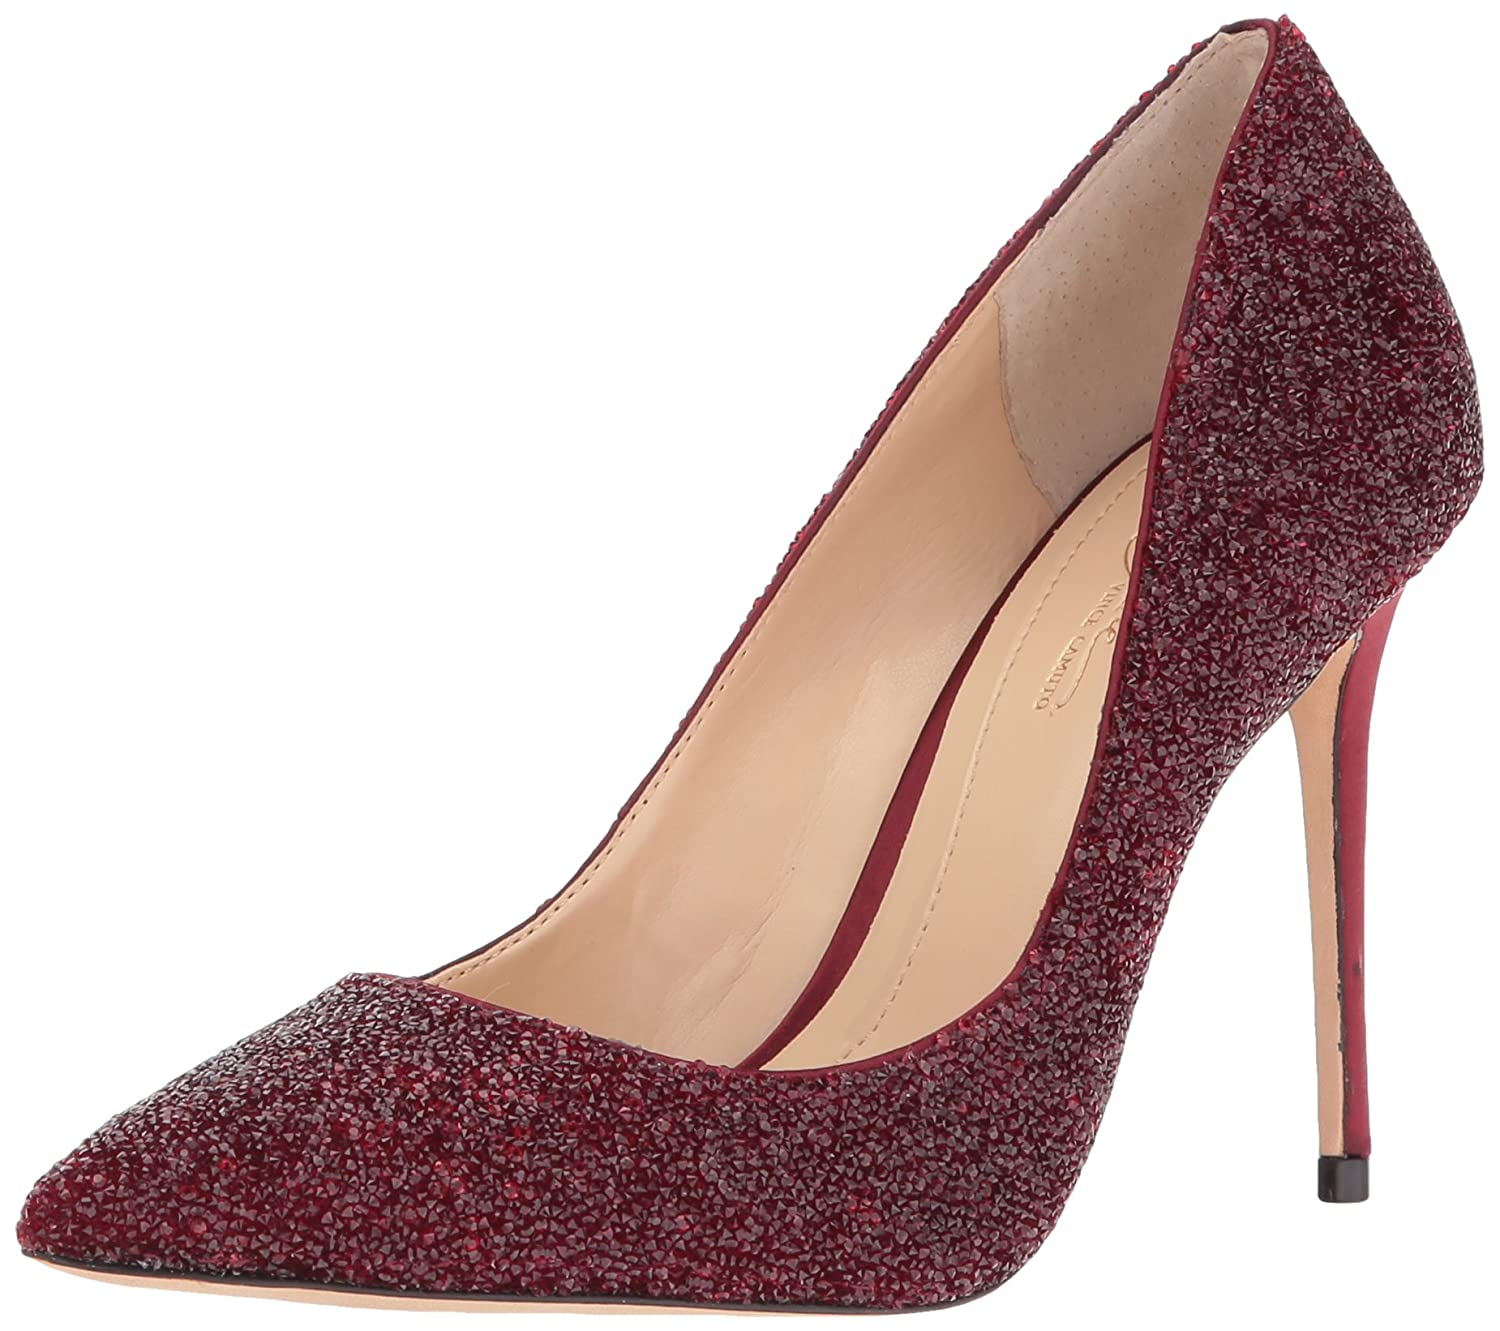 Imagine Vince Camuto Vince Camuto Women's Im-Olson Dress Pump B01IXXRI4Q 9.5 B(M) US|Currant